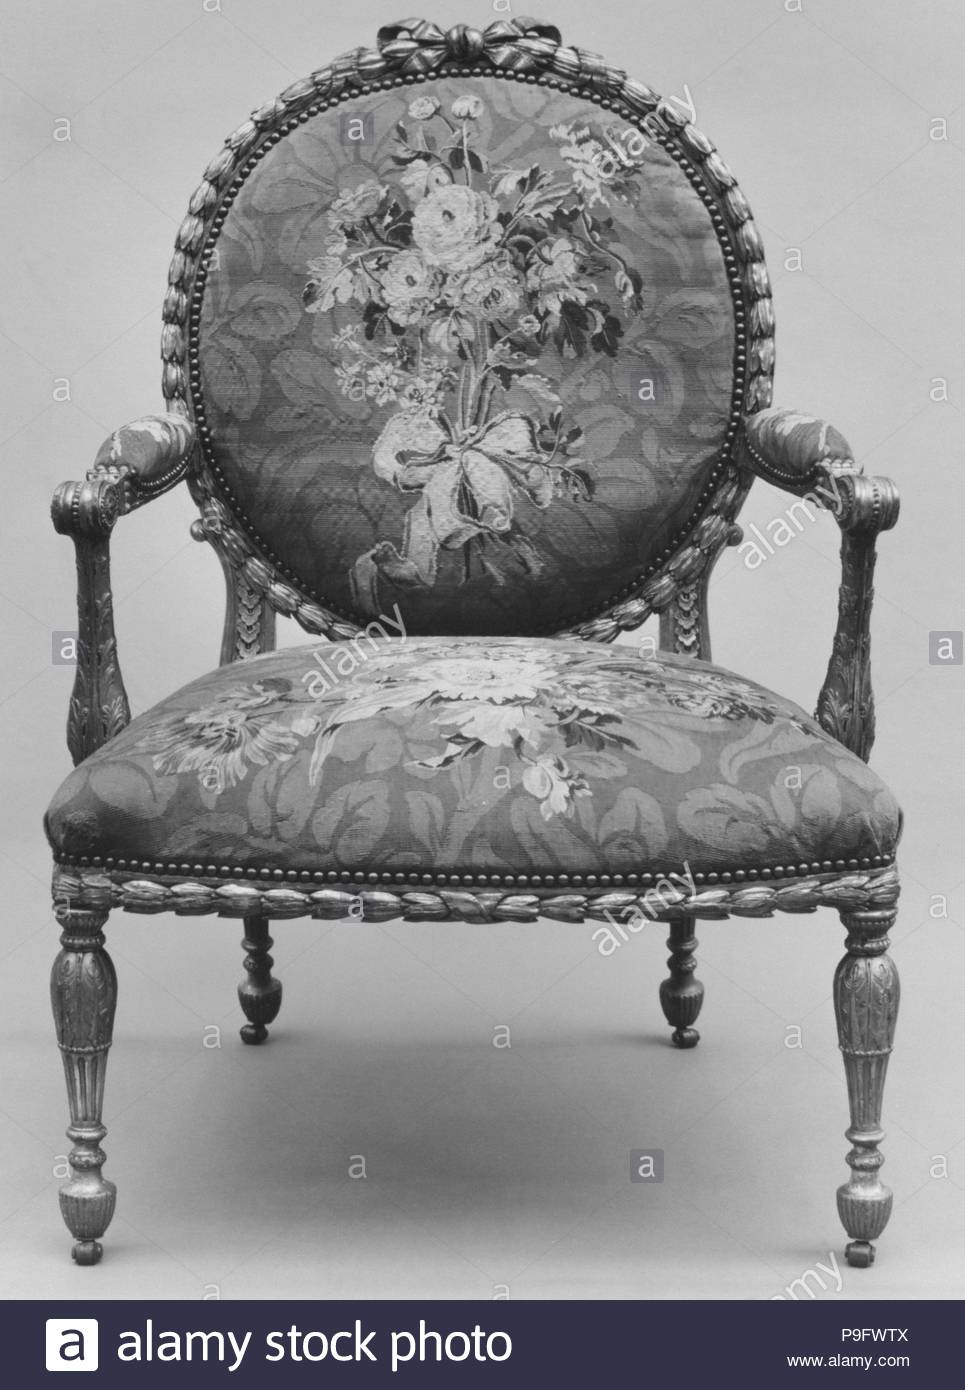 Armchair (one of a set of six), 1769–71, British and French, Gilded fruitwood; wool and silk (22-24 warps per inch, 9-10 per centimeter), 41 3/4 × 28 1/2 × 27 in. (106 × 72.4 × 68.6 cm), Woodwork-Furniture, John Mayhew (British, 1736–1811), and William Ince (British, active ca. 1758/59–1794, died 1804), Workshop of Jacques Neilson (French, 1714–1788). - Stock Image